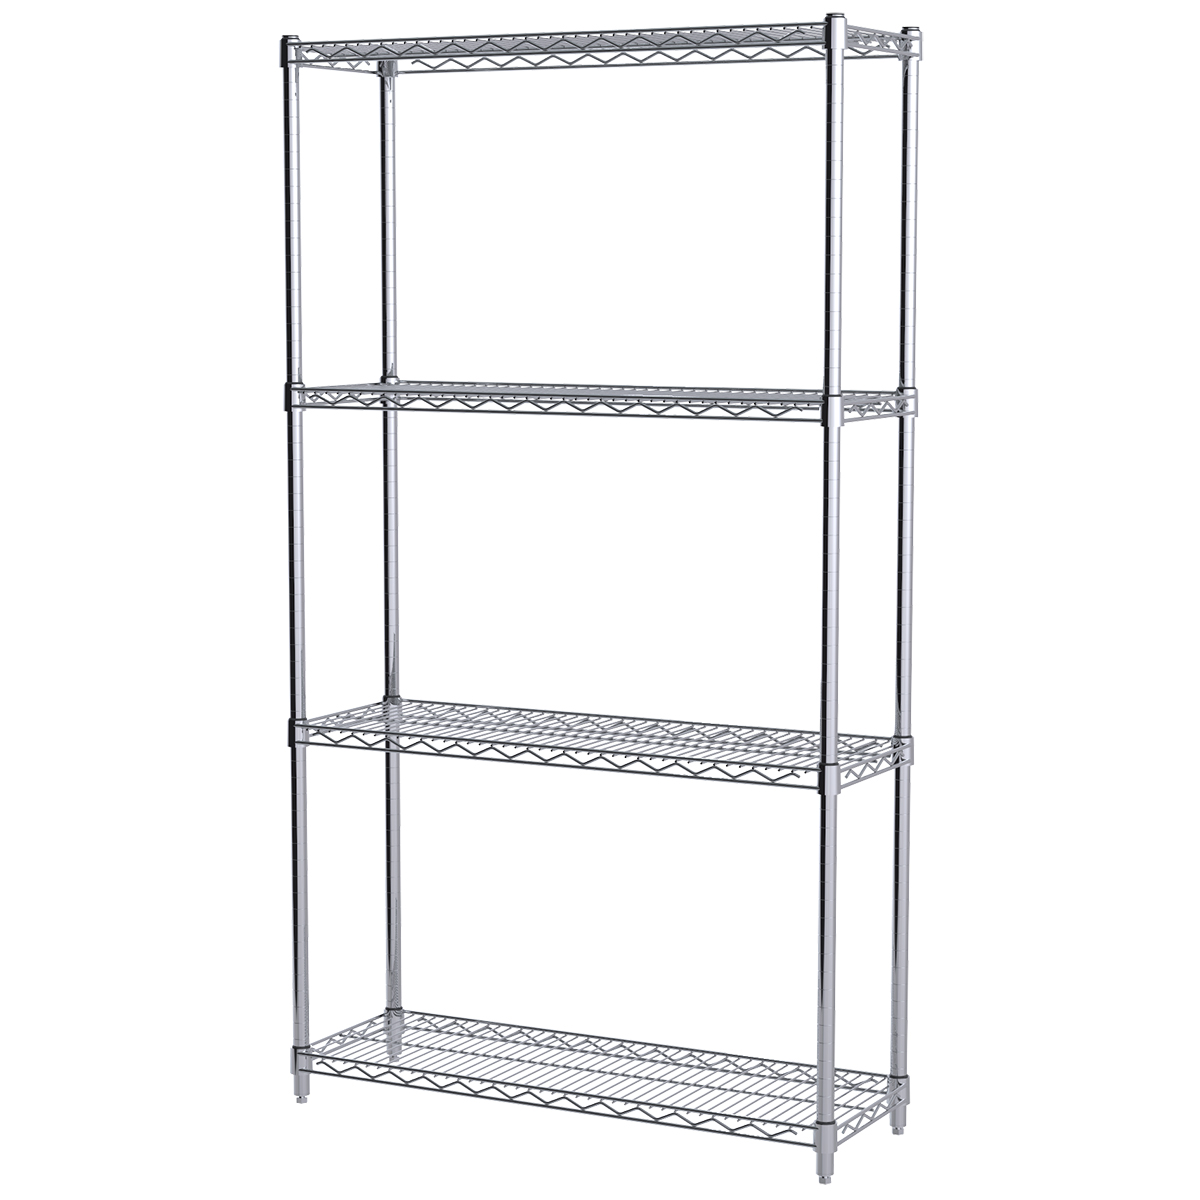 12x36x63, 4-Shelf Wire Shelving Starter Unit, Chrome.  This item sold in carton quantities of 1.